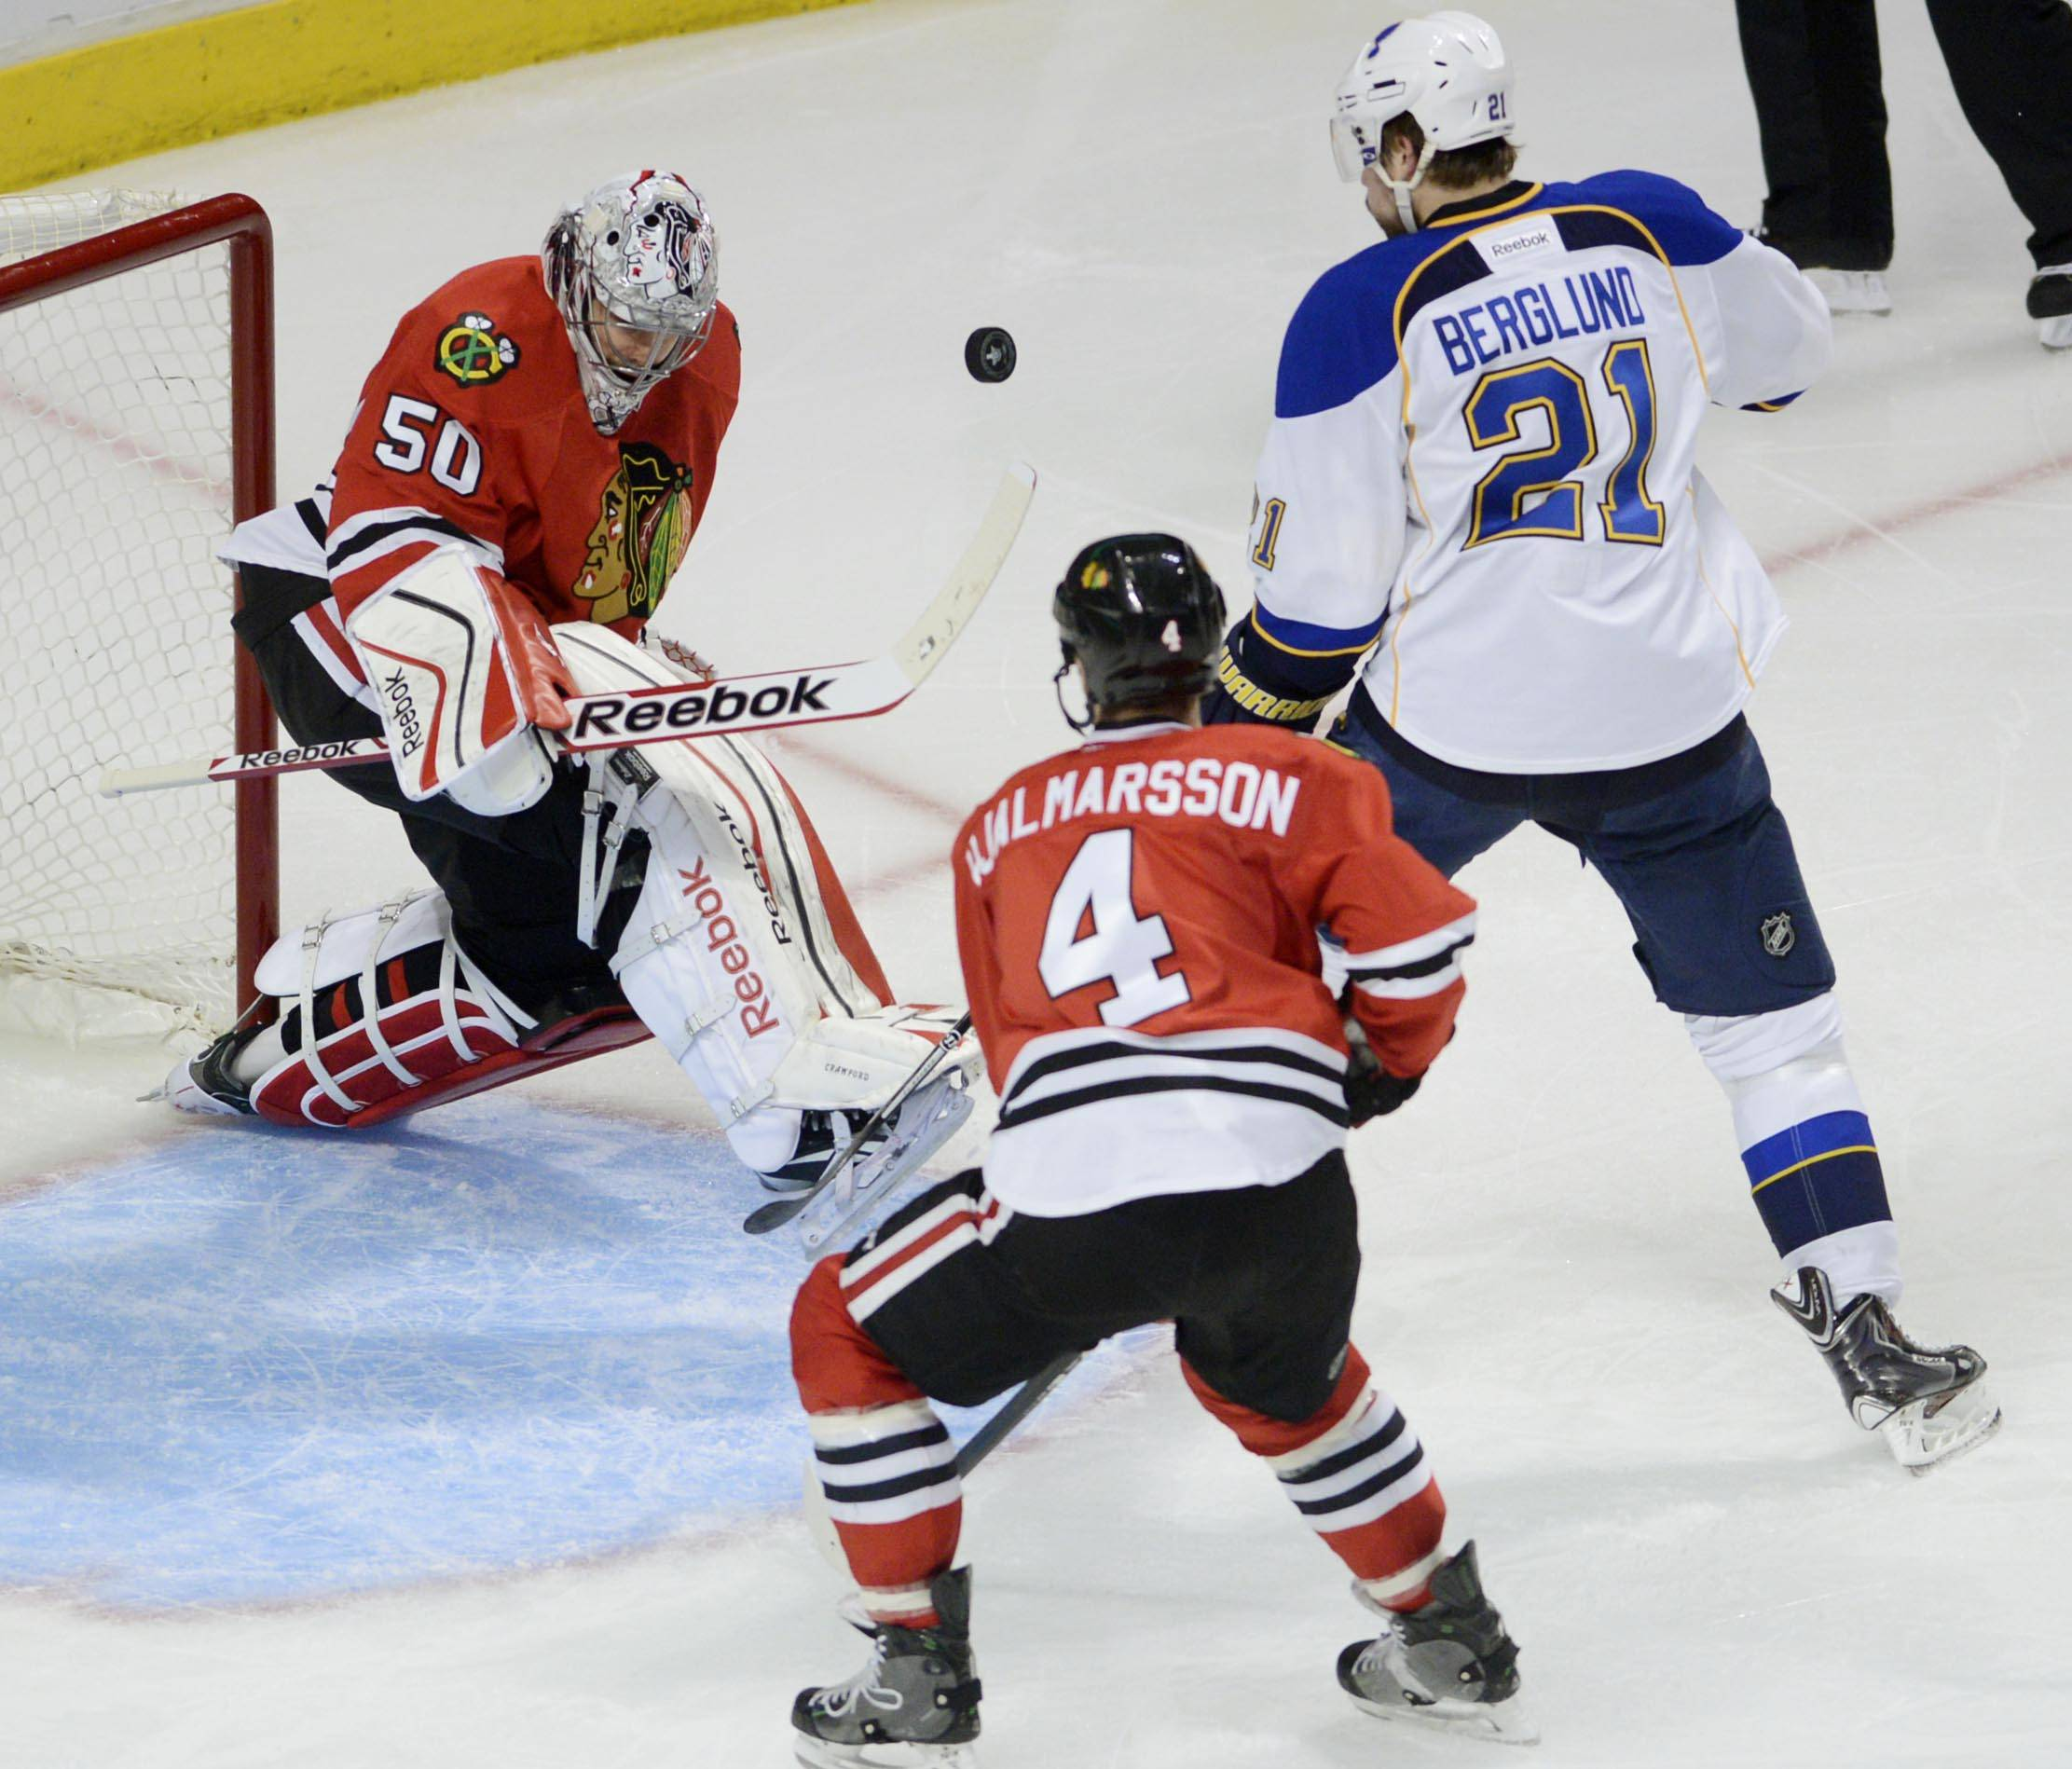 Chicago Blackhawks goalie Corey Crawford deflects a shot as St. Louis Blues center Patrik Berglund and Chicago Blackhawks defenseman Niklas Hjalmarsson close in on the net Sunday in Game 6 of the NHL first round playoffs at the United Center in Chicago.